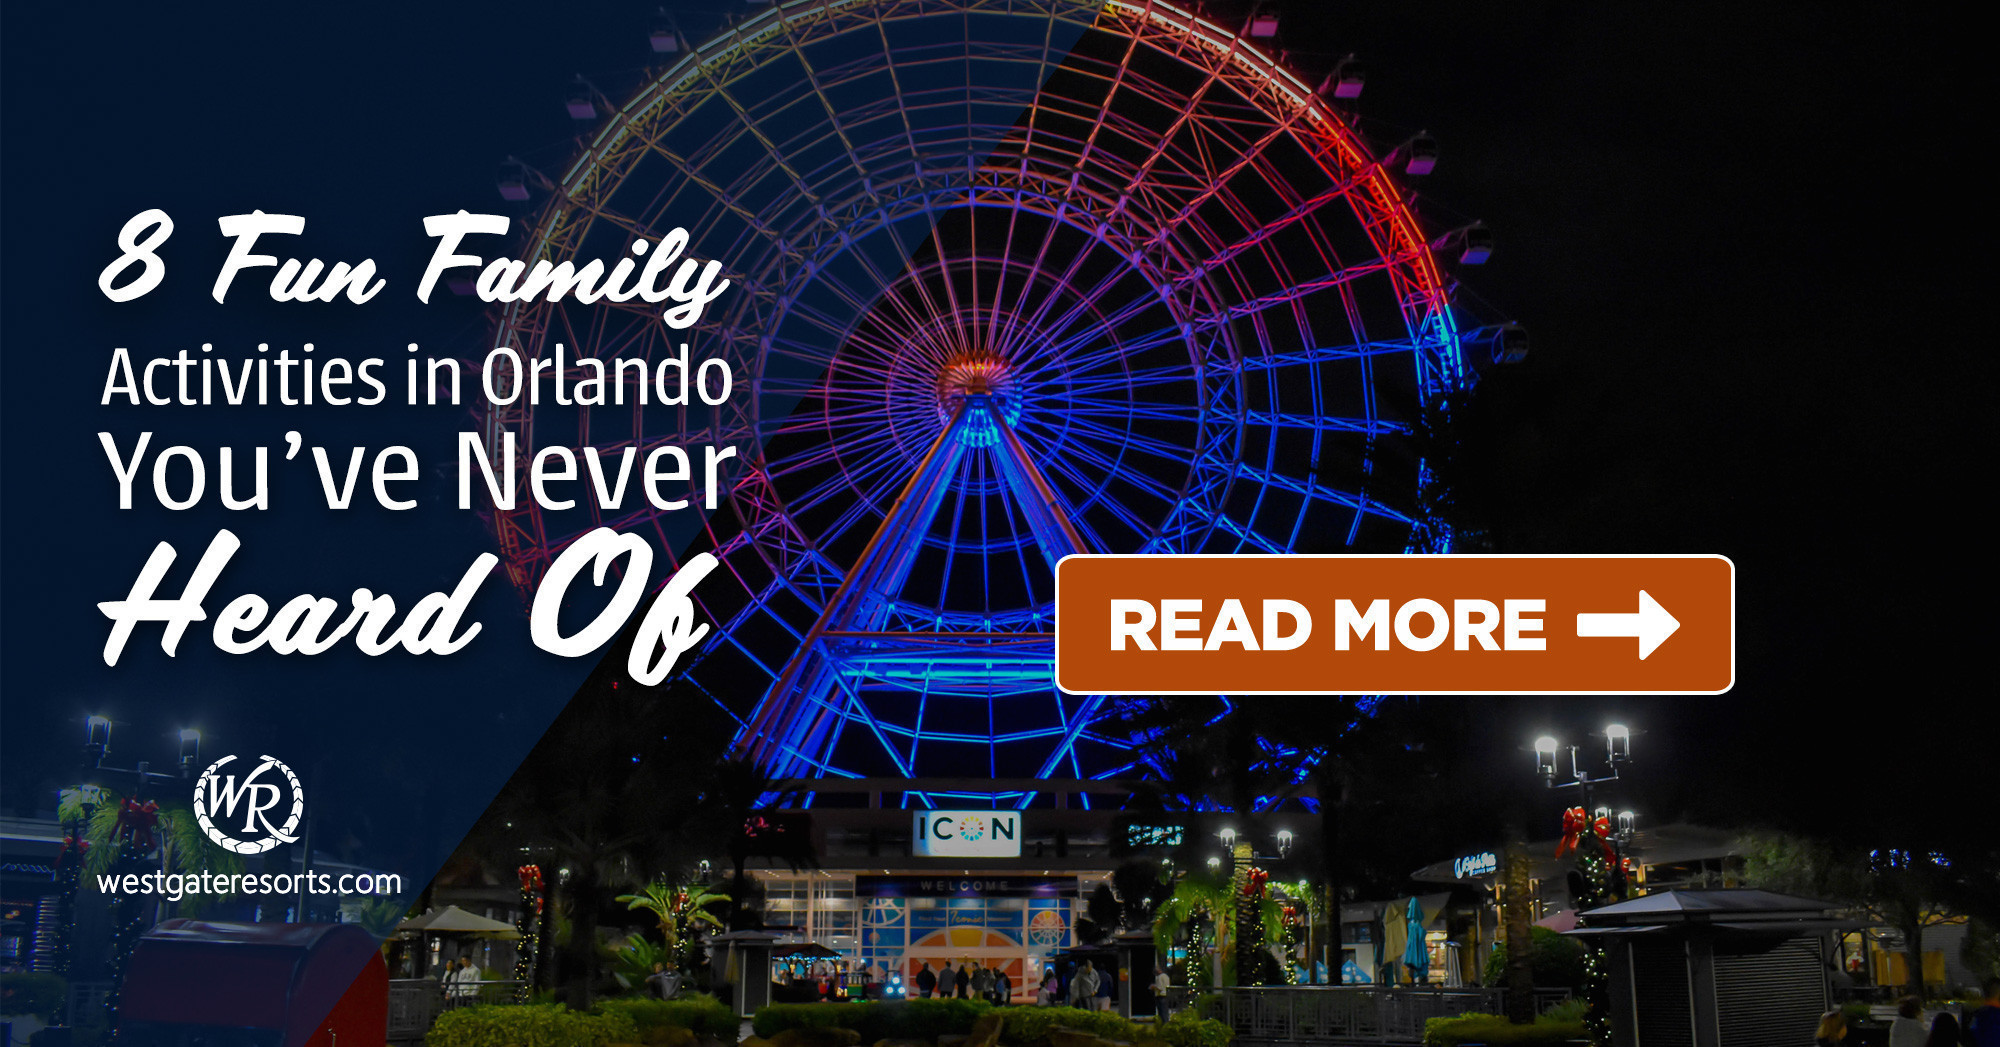 8 Fun Family Activities in Orlando You've Never Heard Of